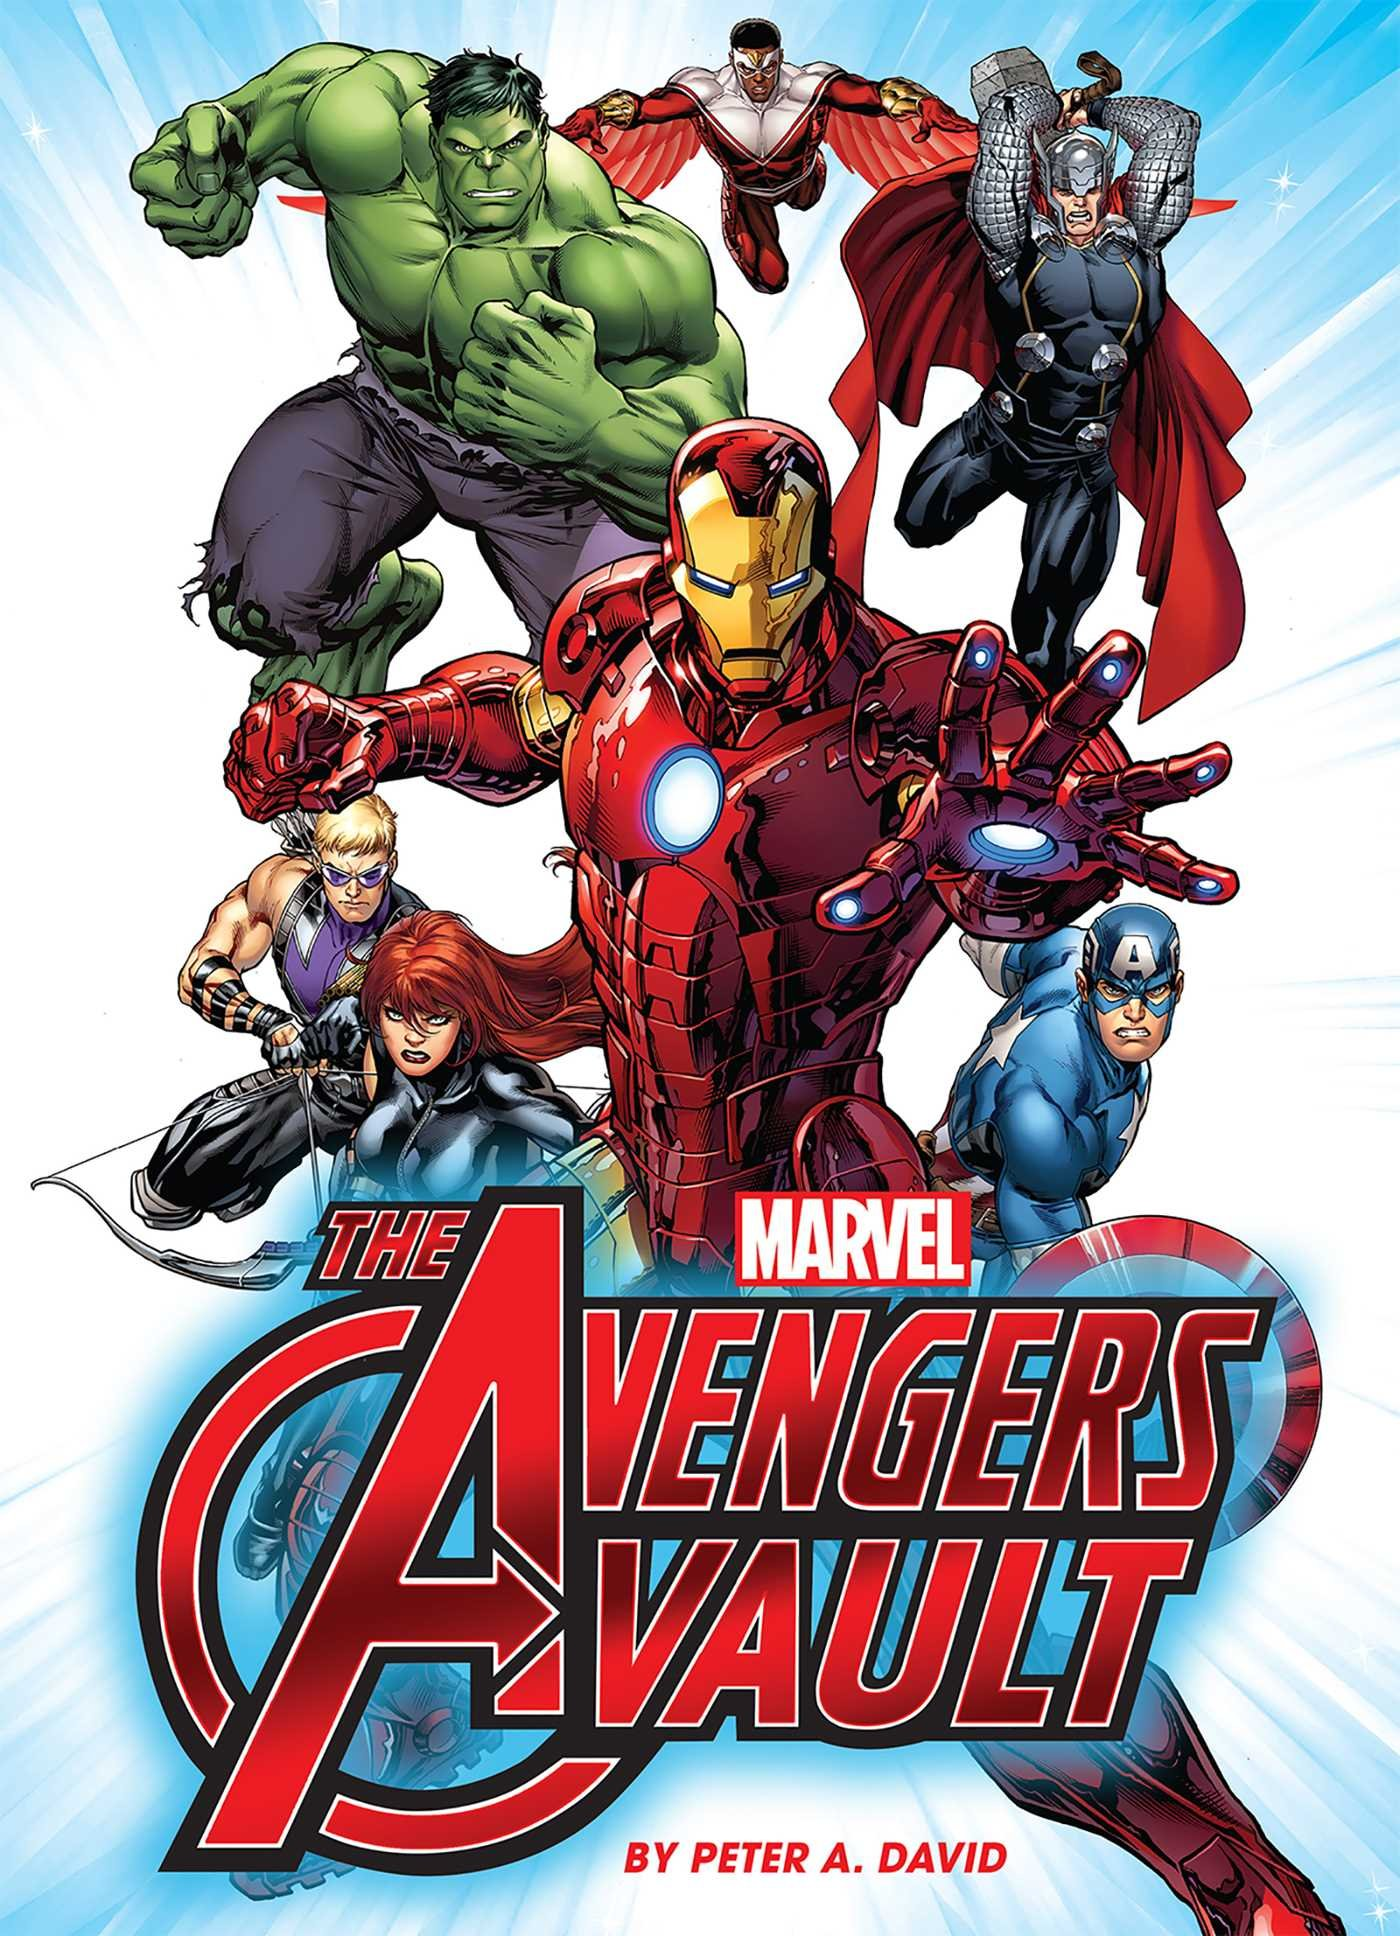 Marvel the avengers vault peter a david 9781626862999 amazon marvel the avengers vault peter a david 9781626862999 amazon books fandeluxe Image collections